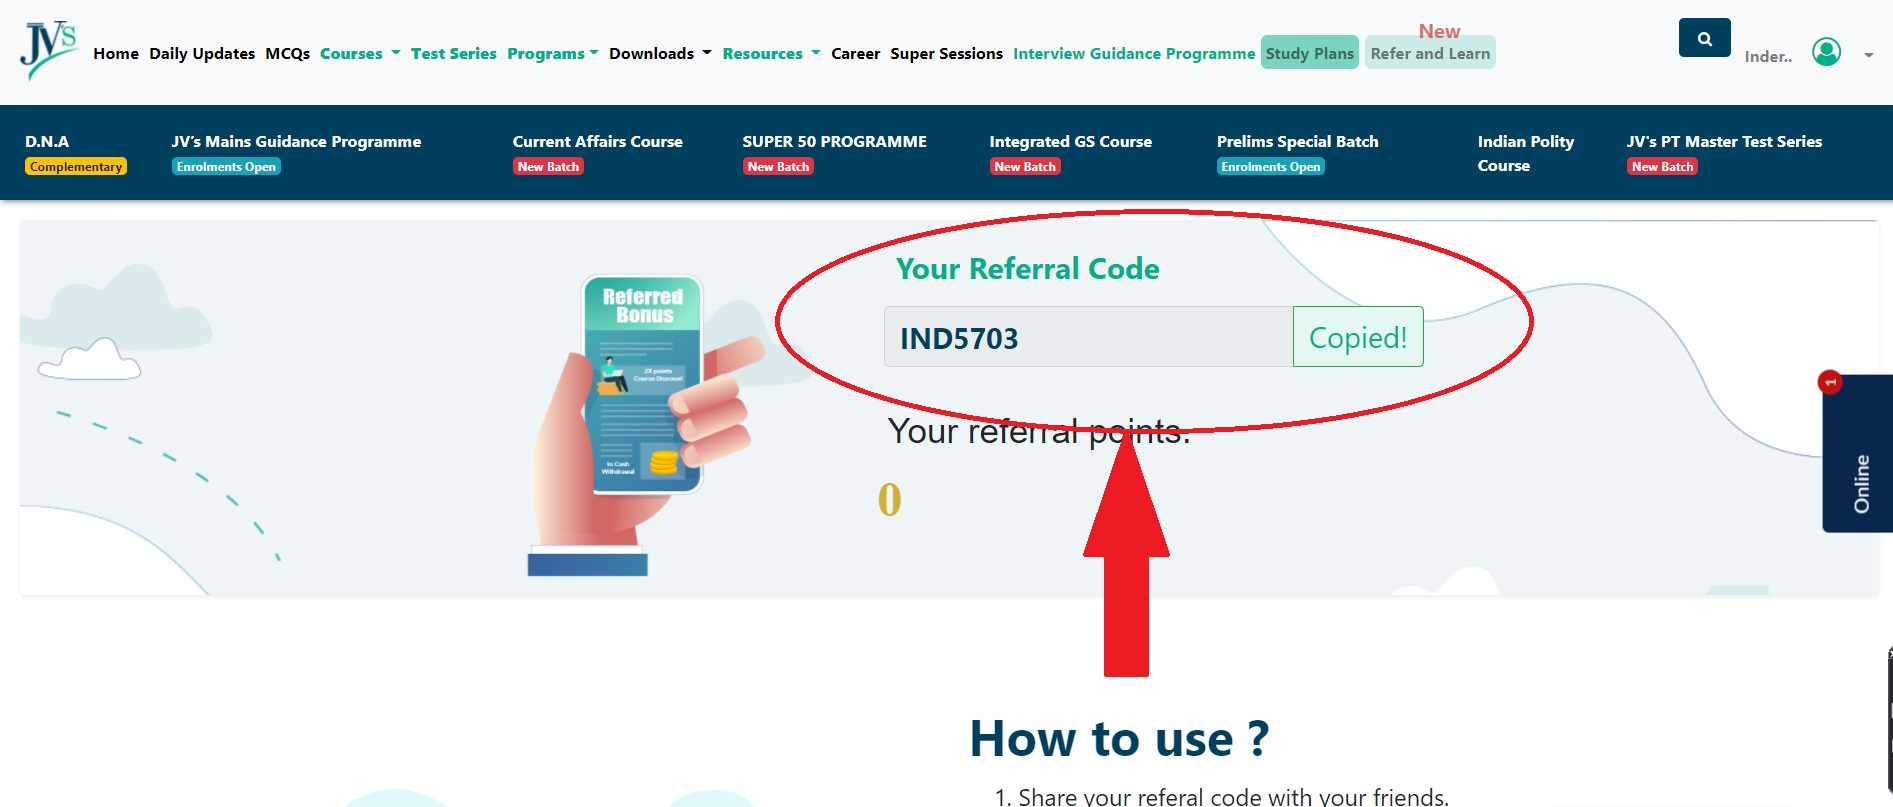 Copy your Referral Code